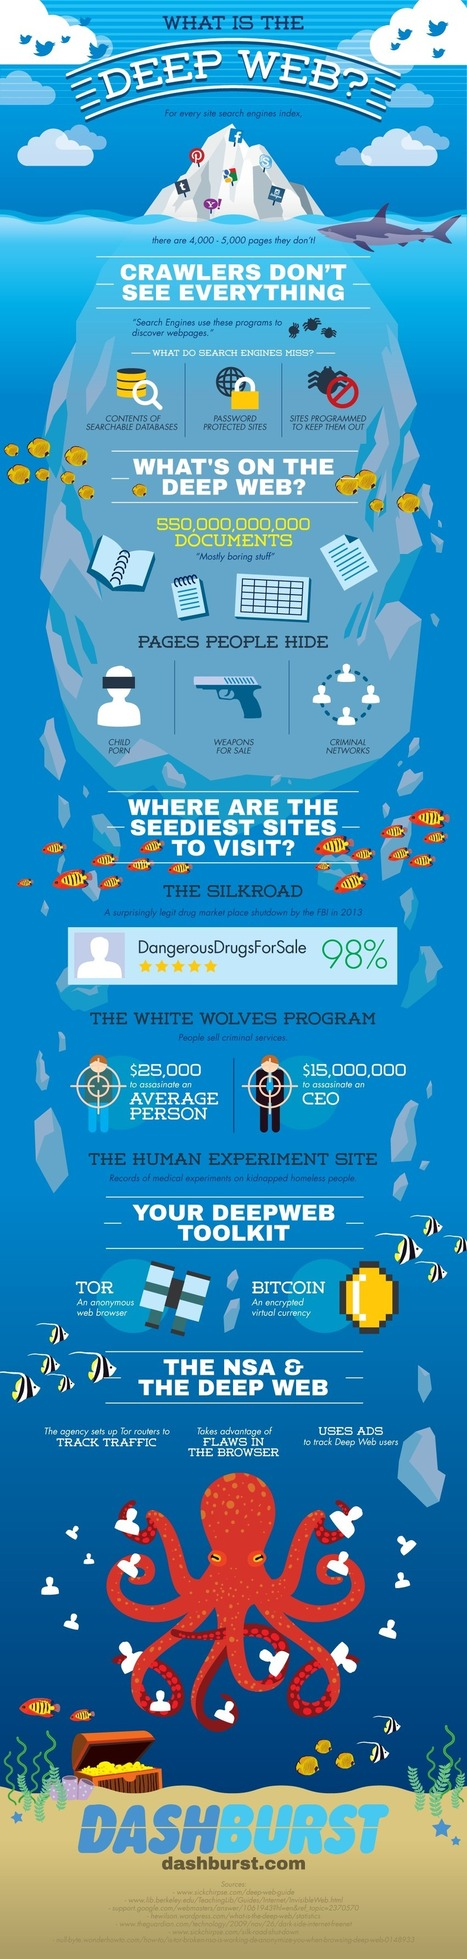 What Is the Deep Web? [INFOGRAPHIC] | warmhat | Scoop.it